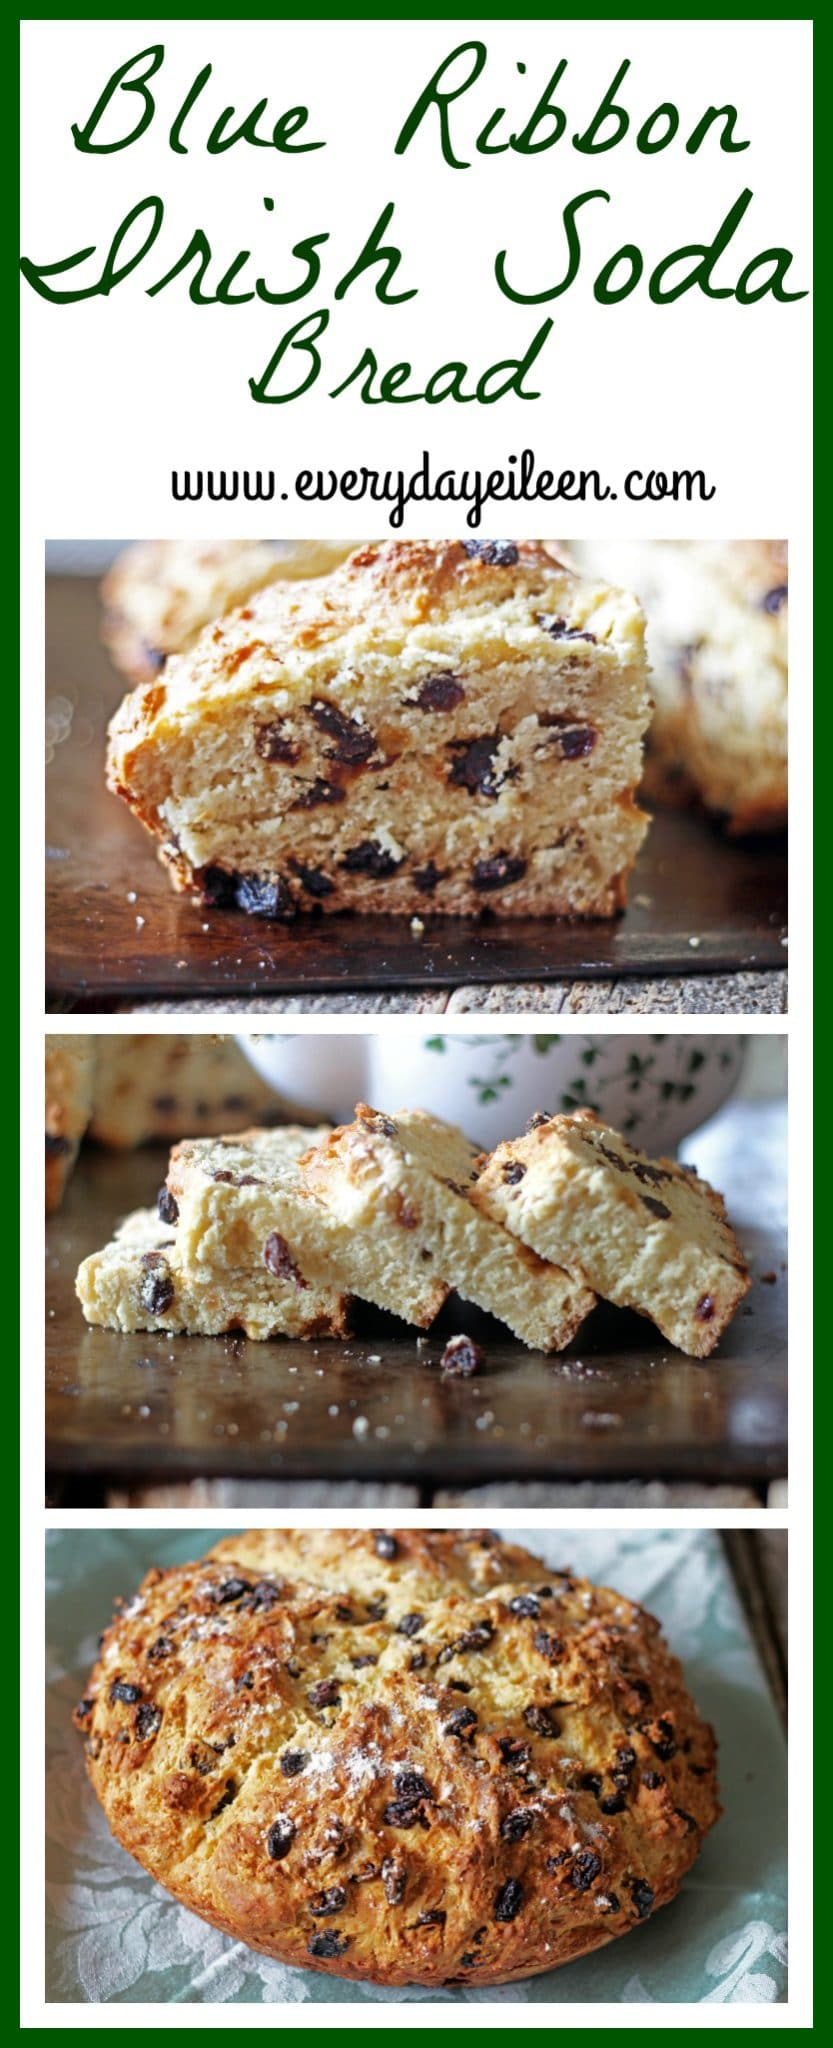 My Blue Ribbon Authentic Irish Soda Bread